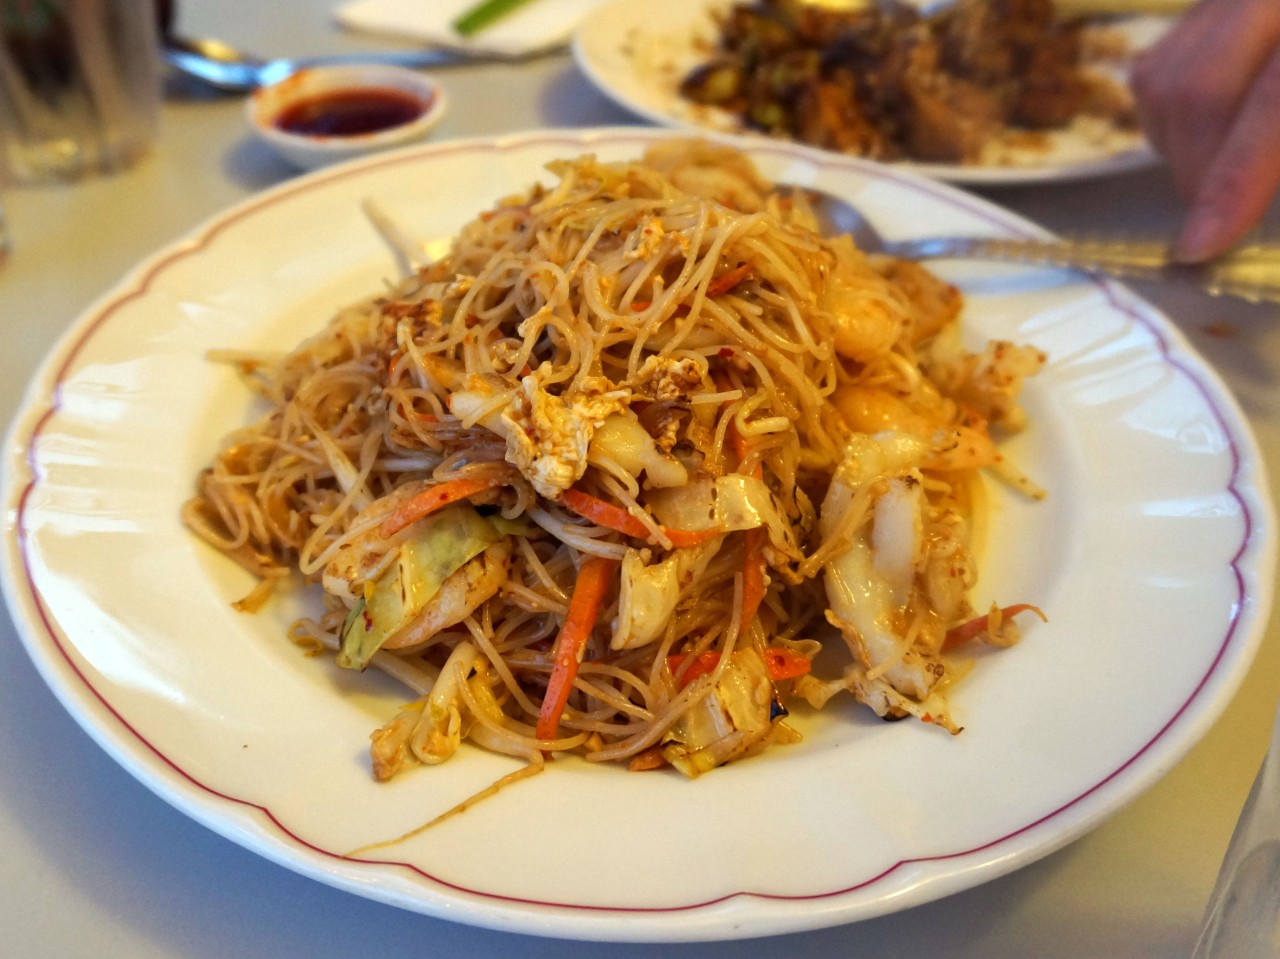 Geylang Sambal Bee Hoon - 'Spicy sambal wok fried rice vermicelli & vegetables with choice of seafood, chicken or vegetables' {$12}